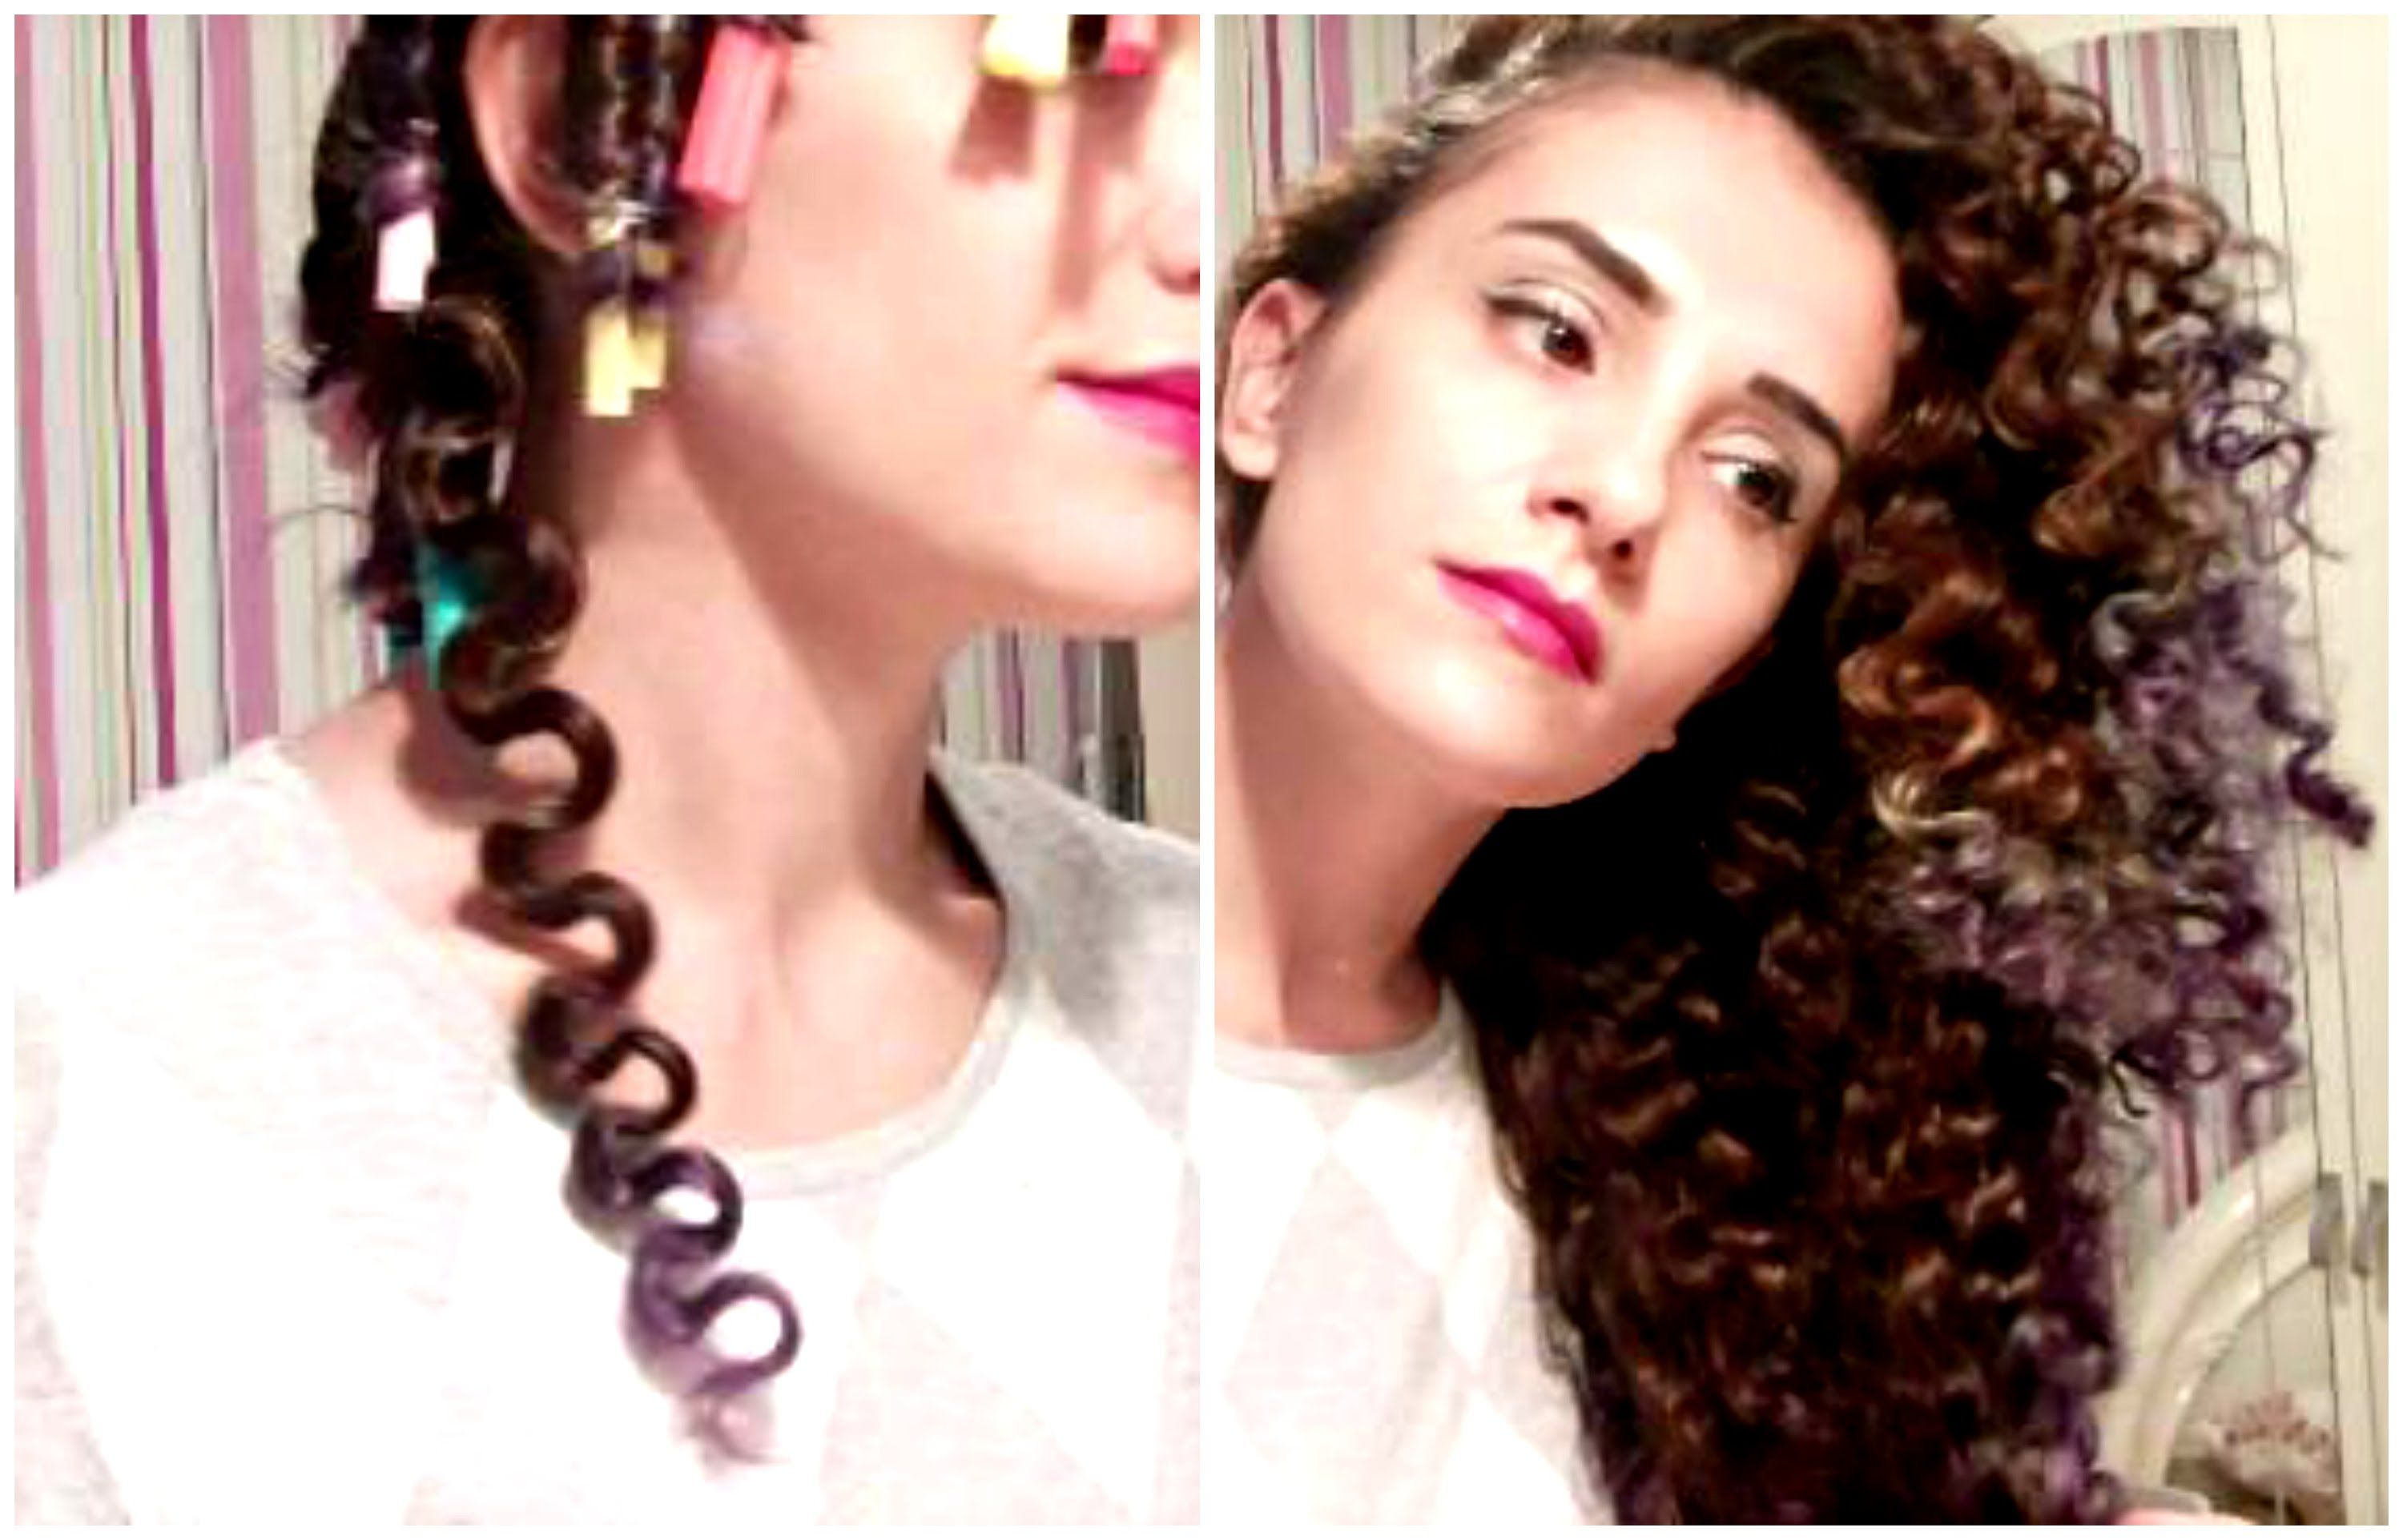 Tight Spiral Curls On Pinterest Spiral Perms Tight